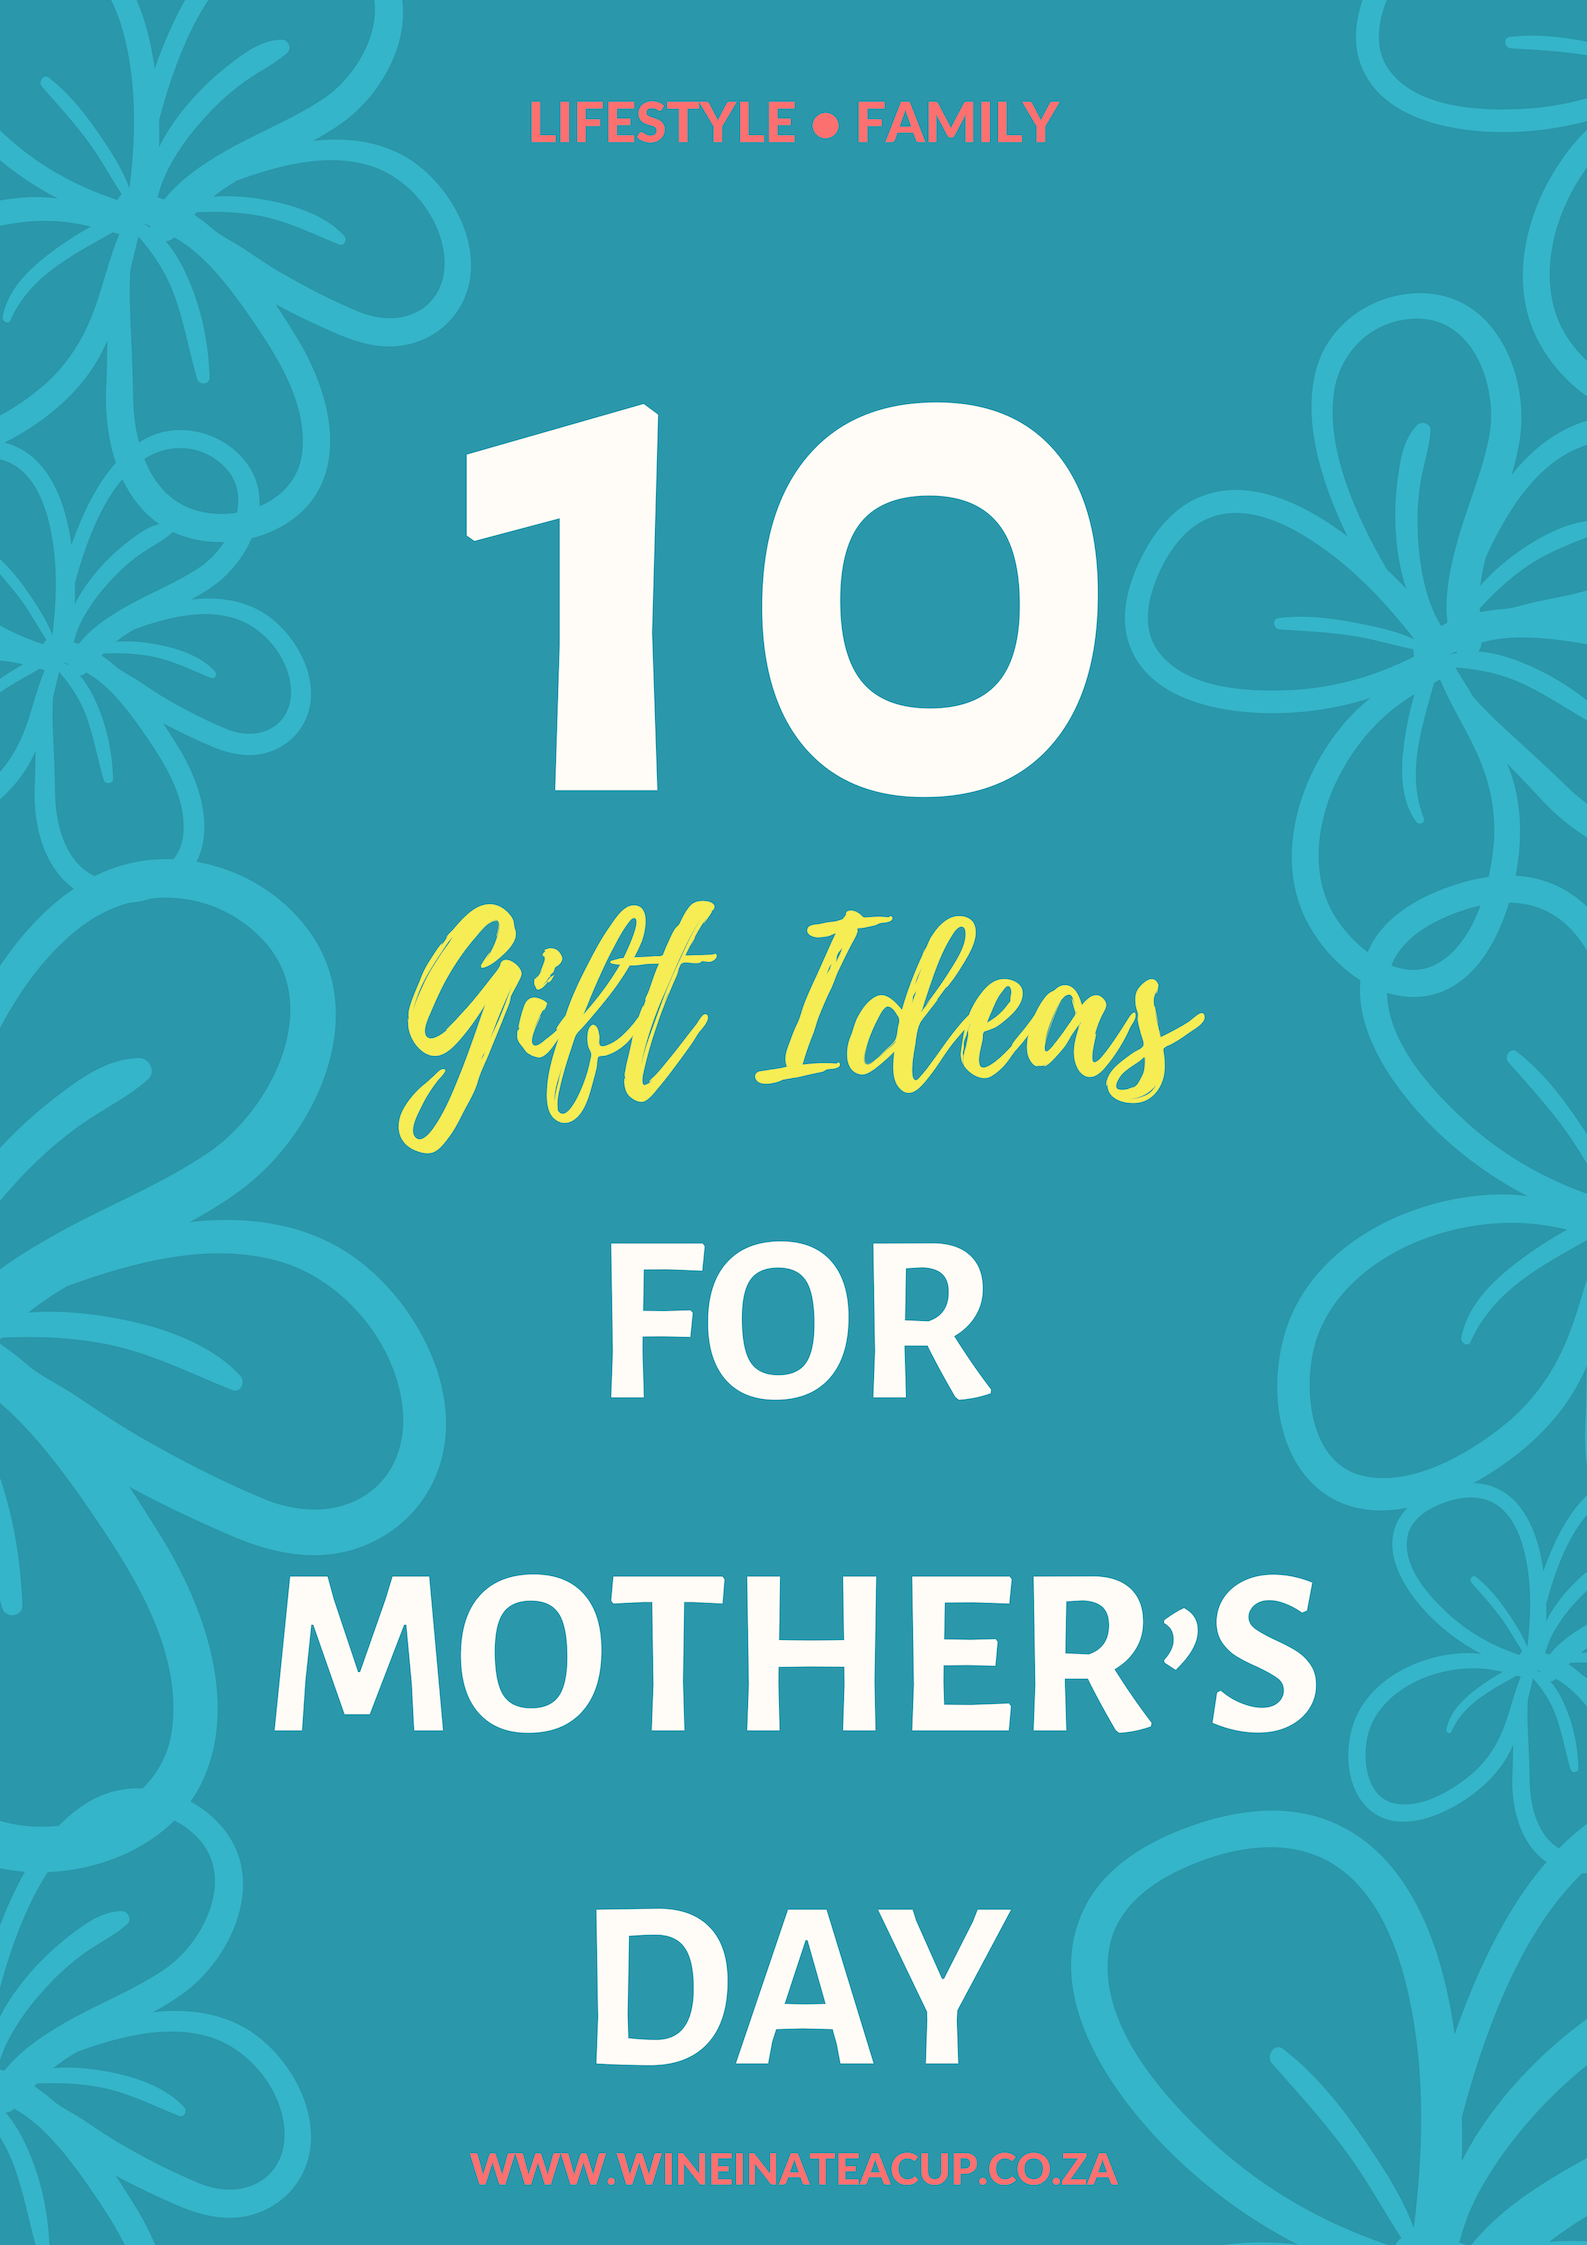 10 Gift Ideas for Mother's Day. If you're stuck for some original gifting ideas for Mom's big day, have a read of this. Get your gifting juices flowing. #gifts #gifting #mothersday #mothersdaygifts